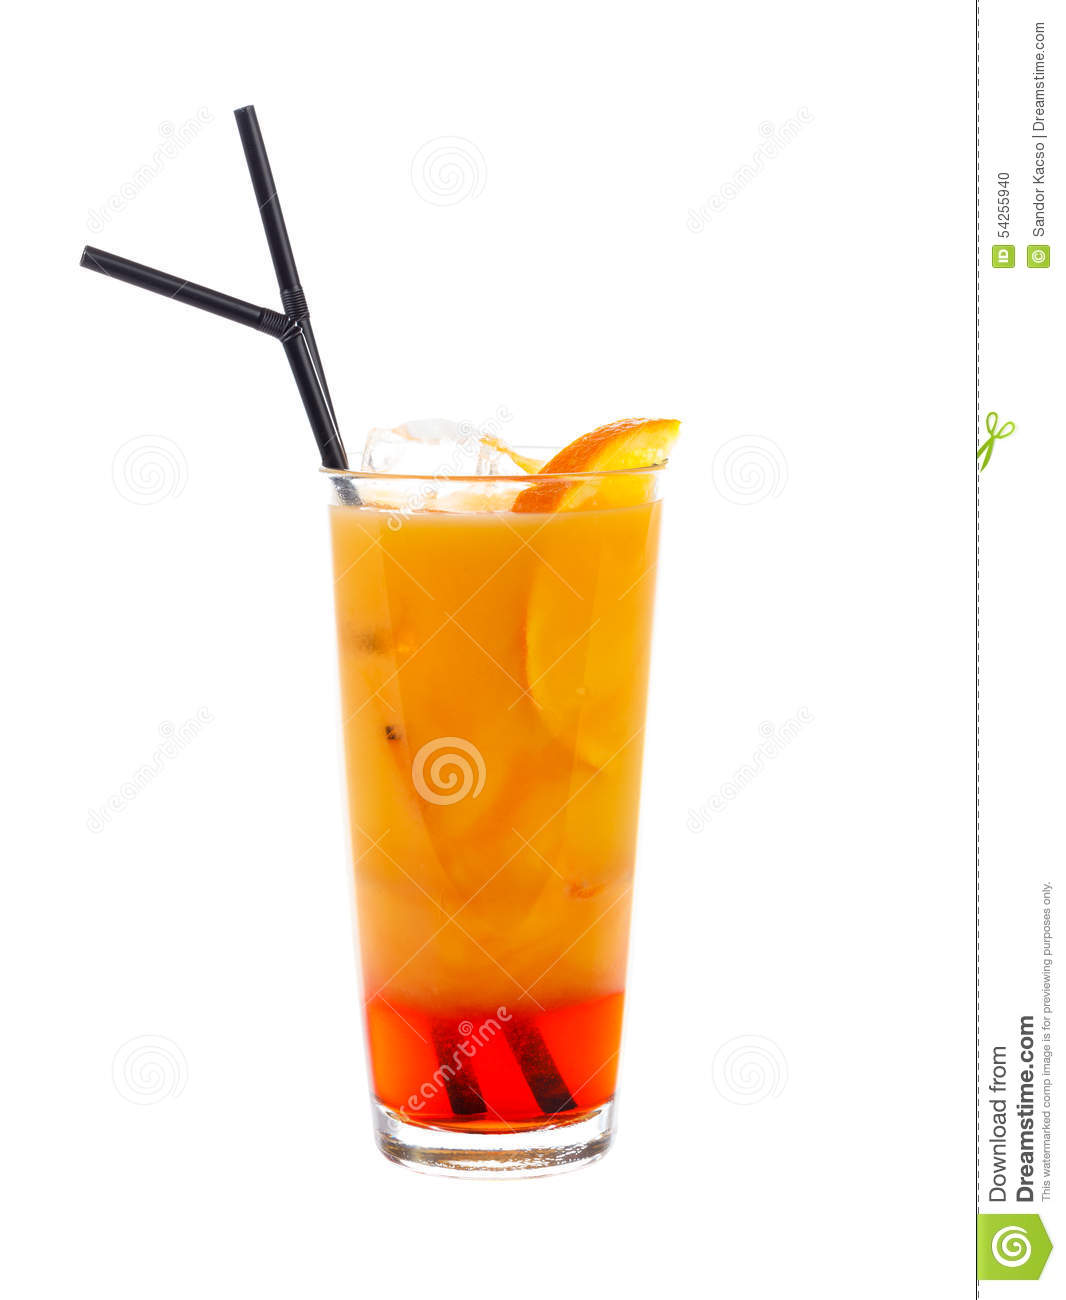 Campari orange cocktail stock photo image 54255940 for Cocktail orange